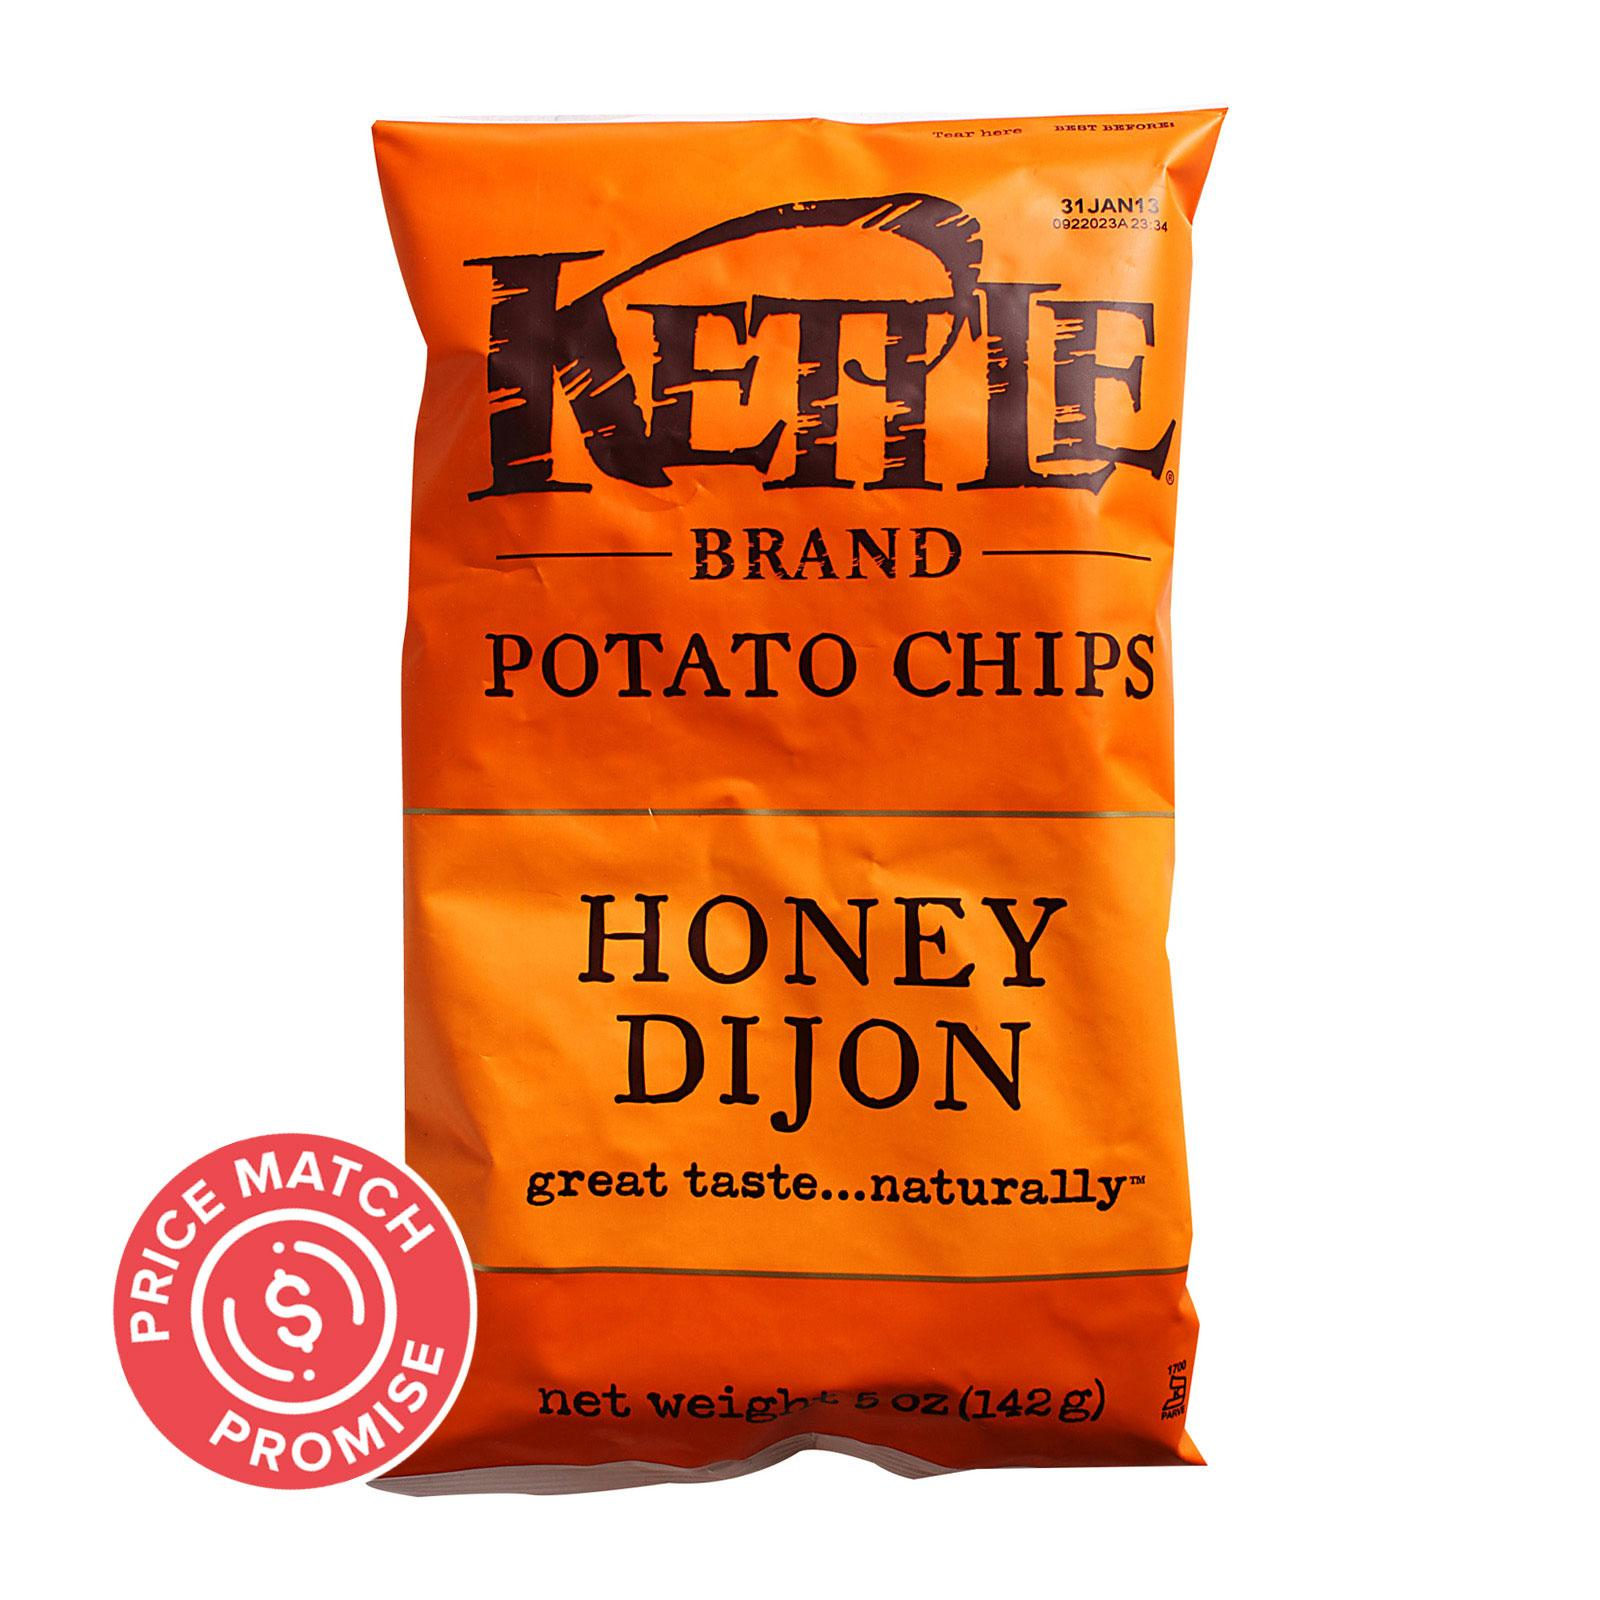 Kettle Brand Potato Chips - Honey Dijon